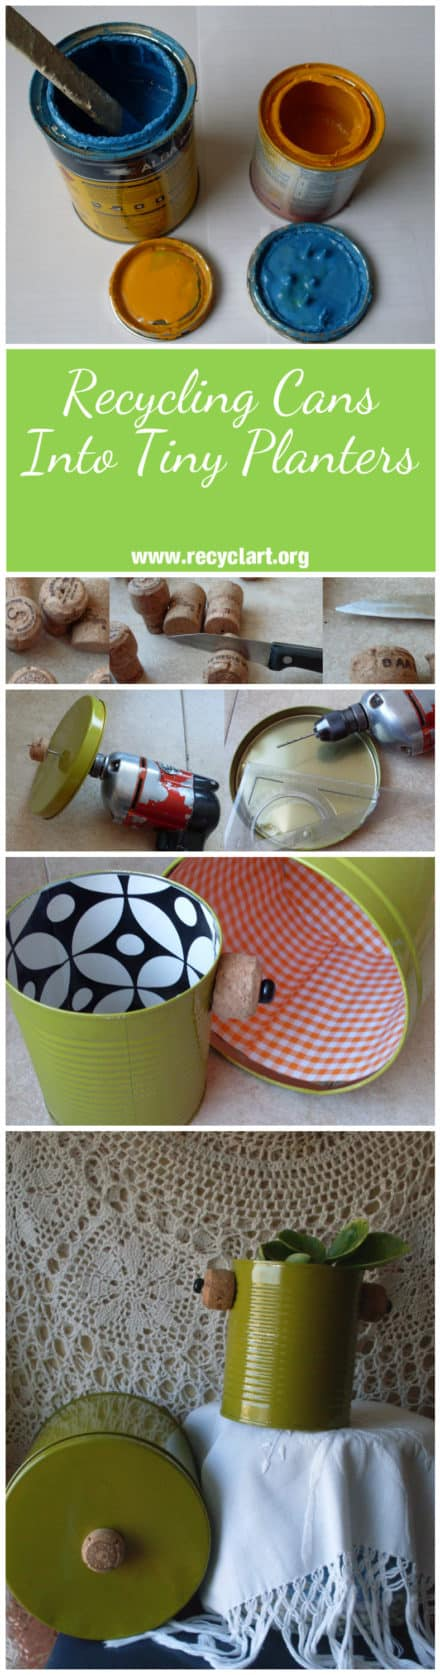 Recycling Cans Into Tiny Planters / Reciclado De Latas